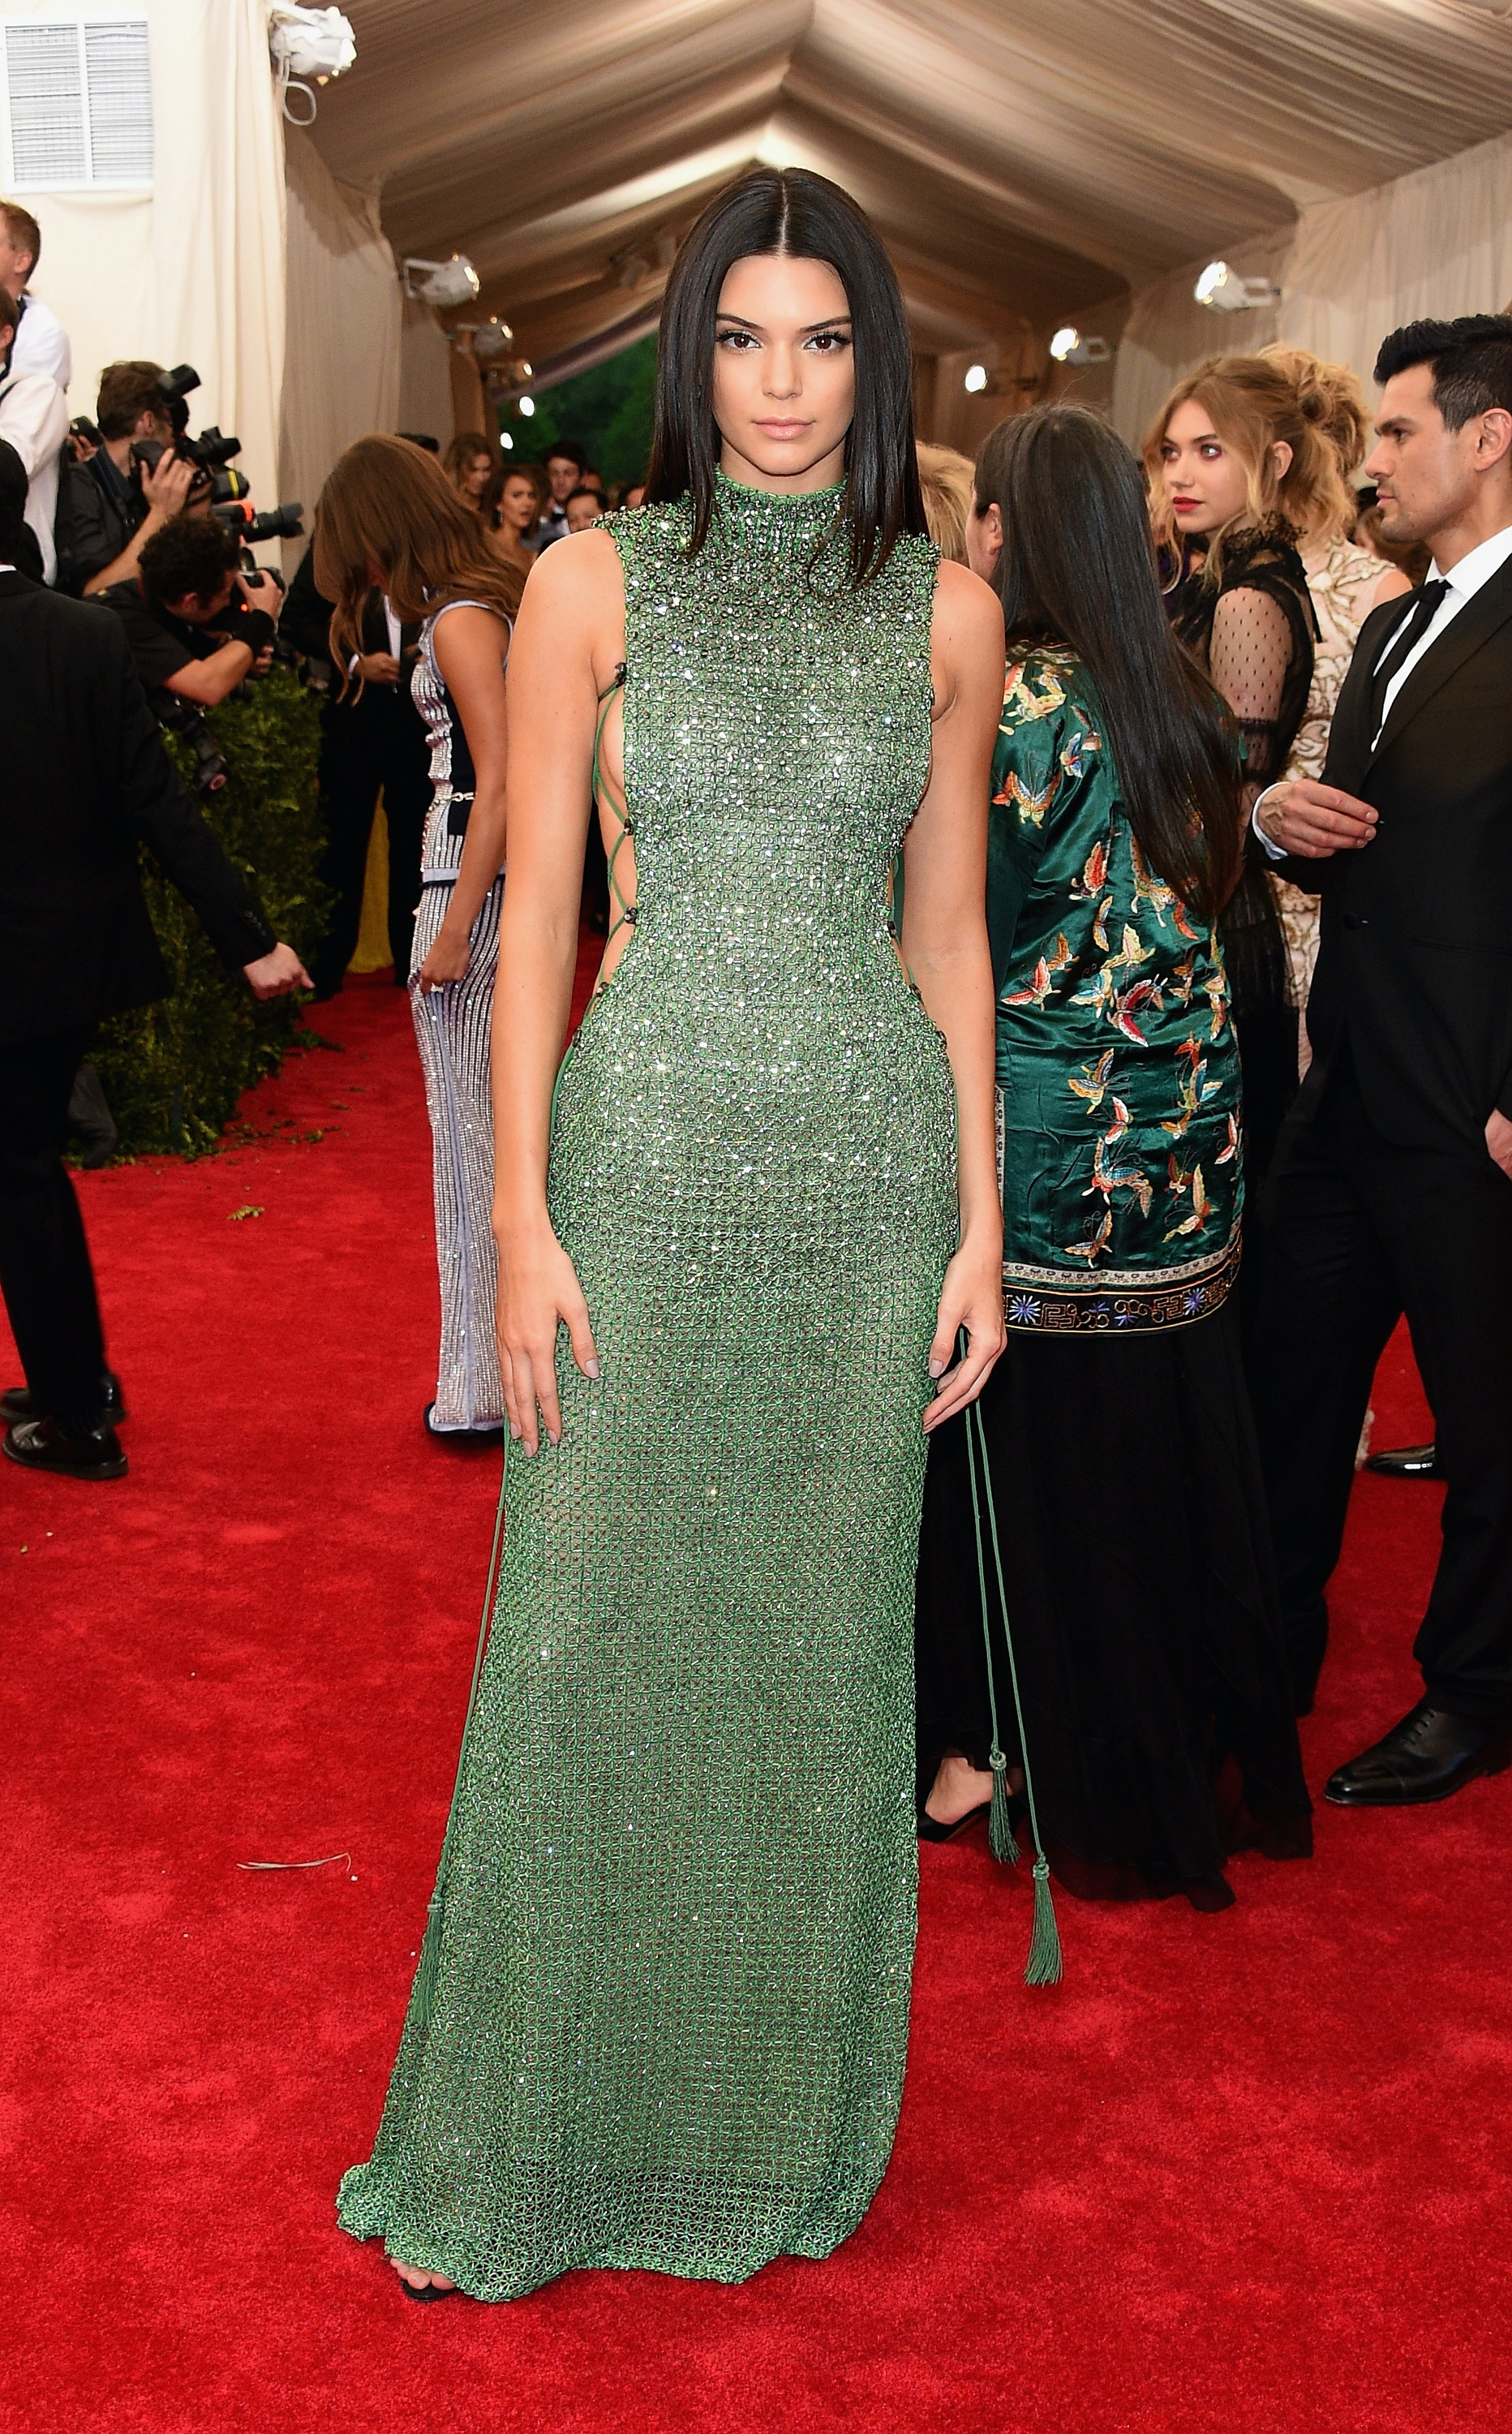 The 2015 Met Gala Dresses Embraced The Evening's Theme With ...